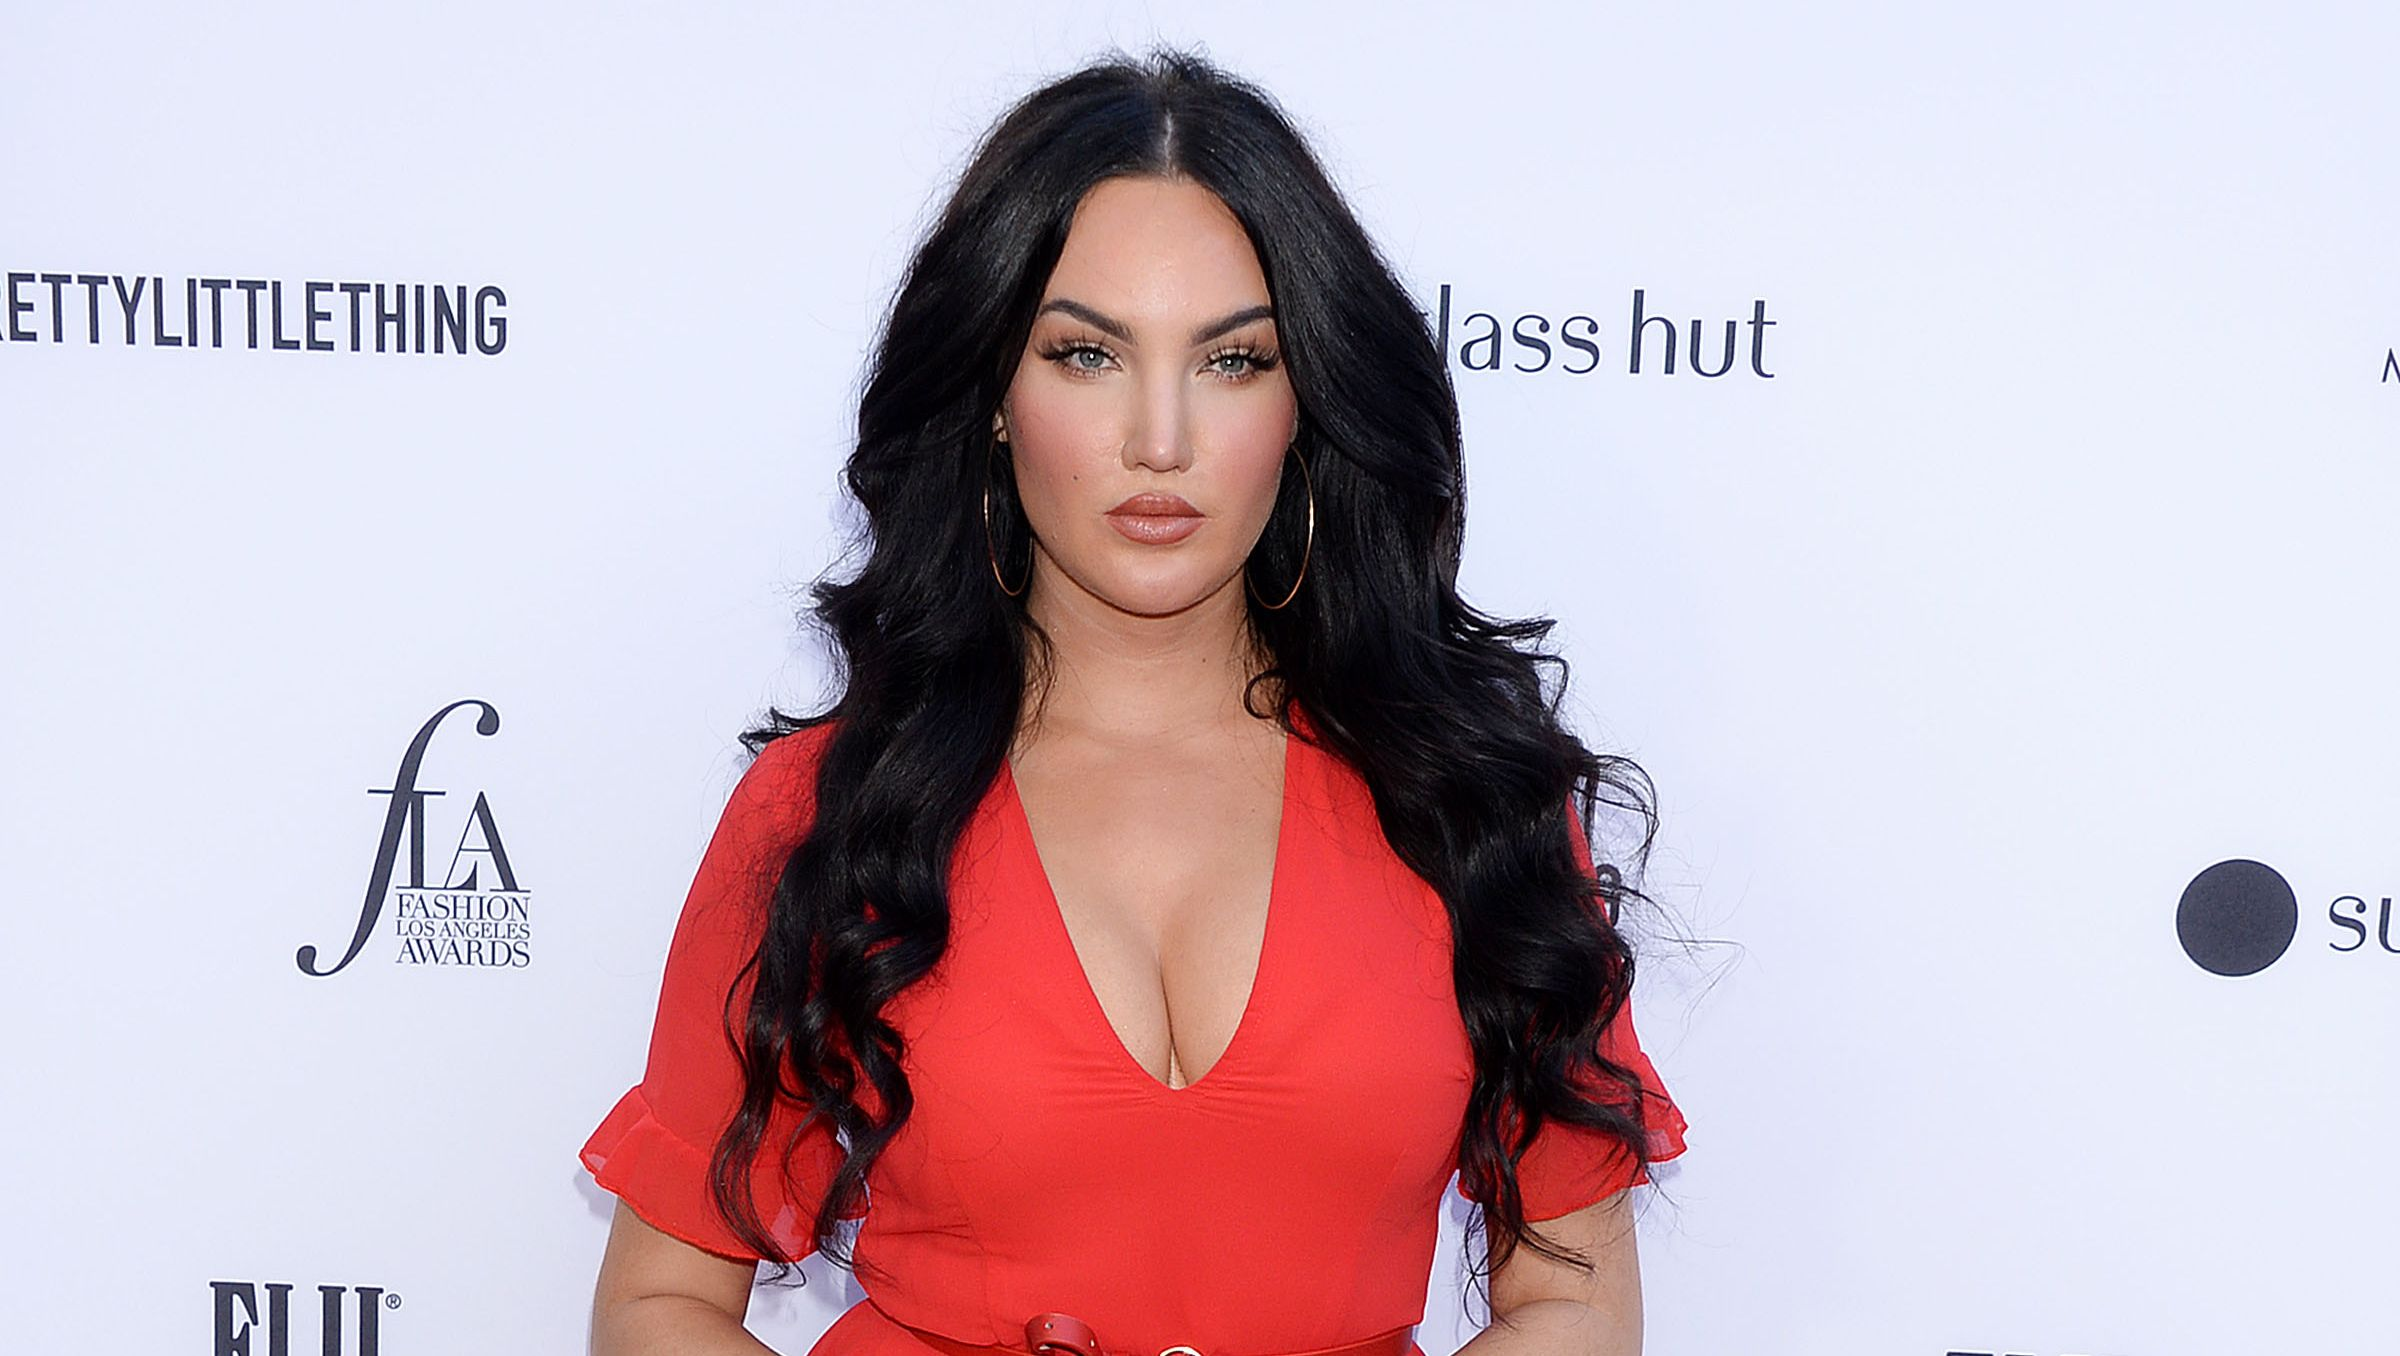 Natalie Halcro Hot Gala Dress Wallpapers - Natalie Halcro Net Worth, Pics, Wallpapers, Career and Biography